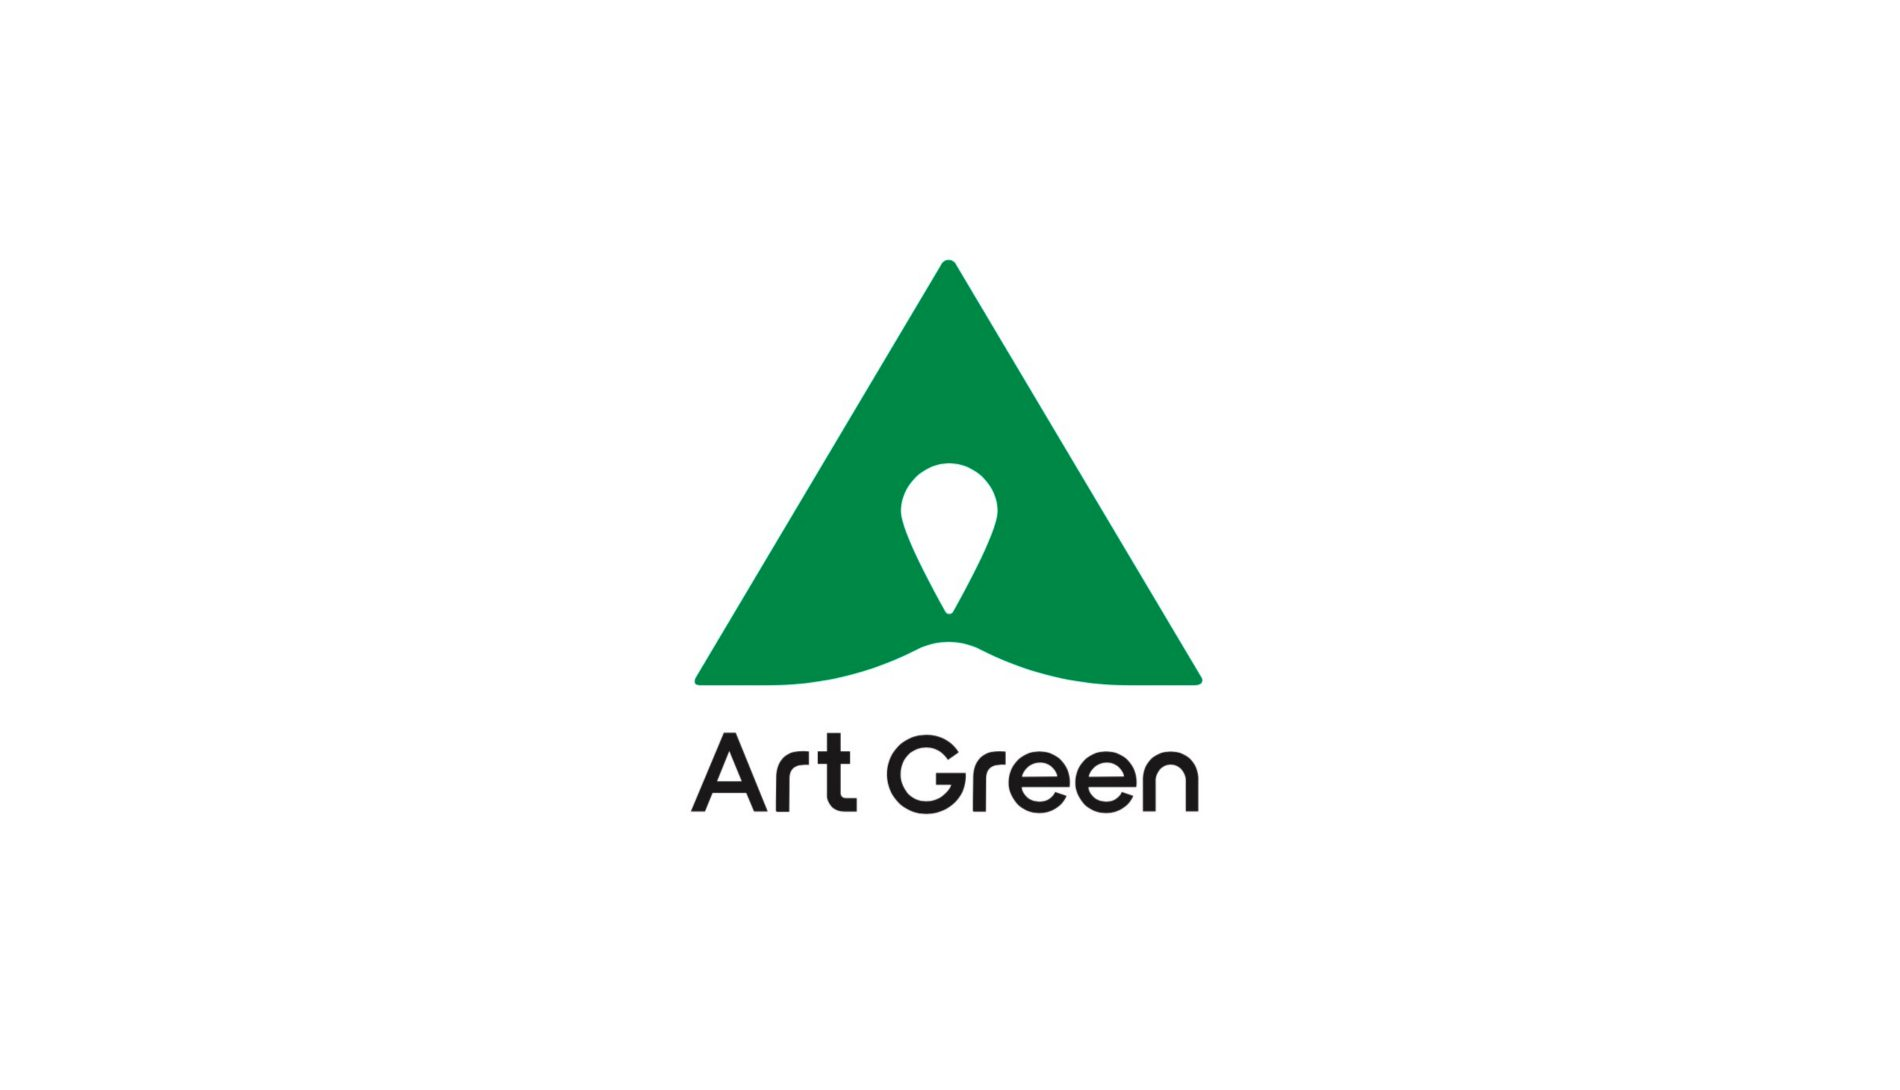 ART GREEN Co., Ltd. BRANDING